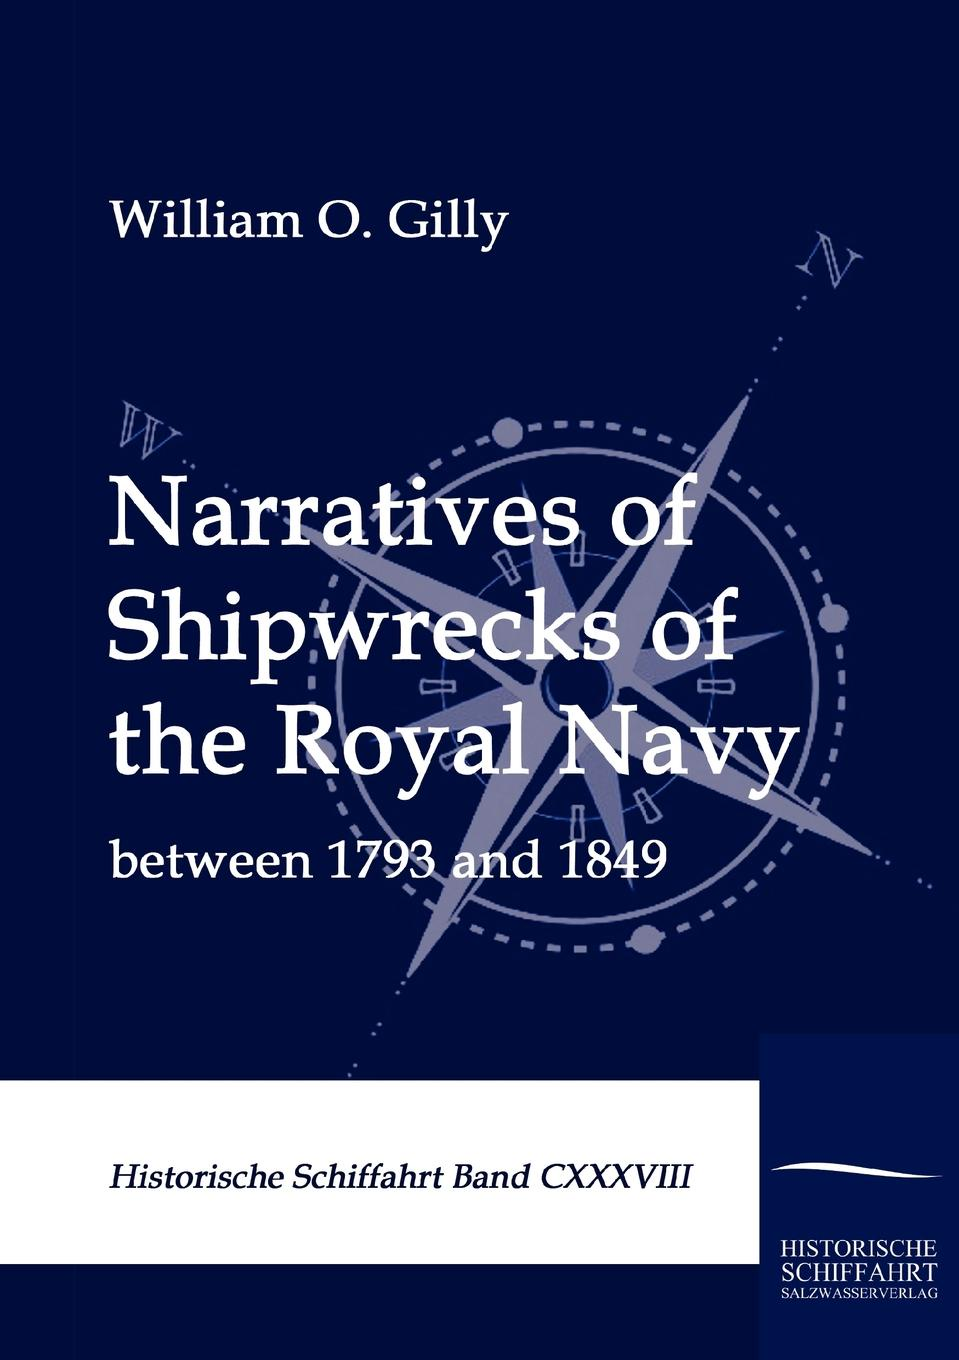 William O. Gilly Narratives of Shipwrecks of the Royal Navy цена 2017